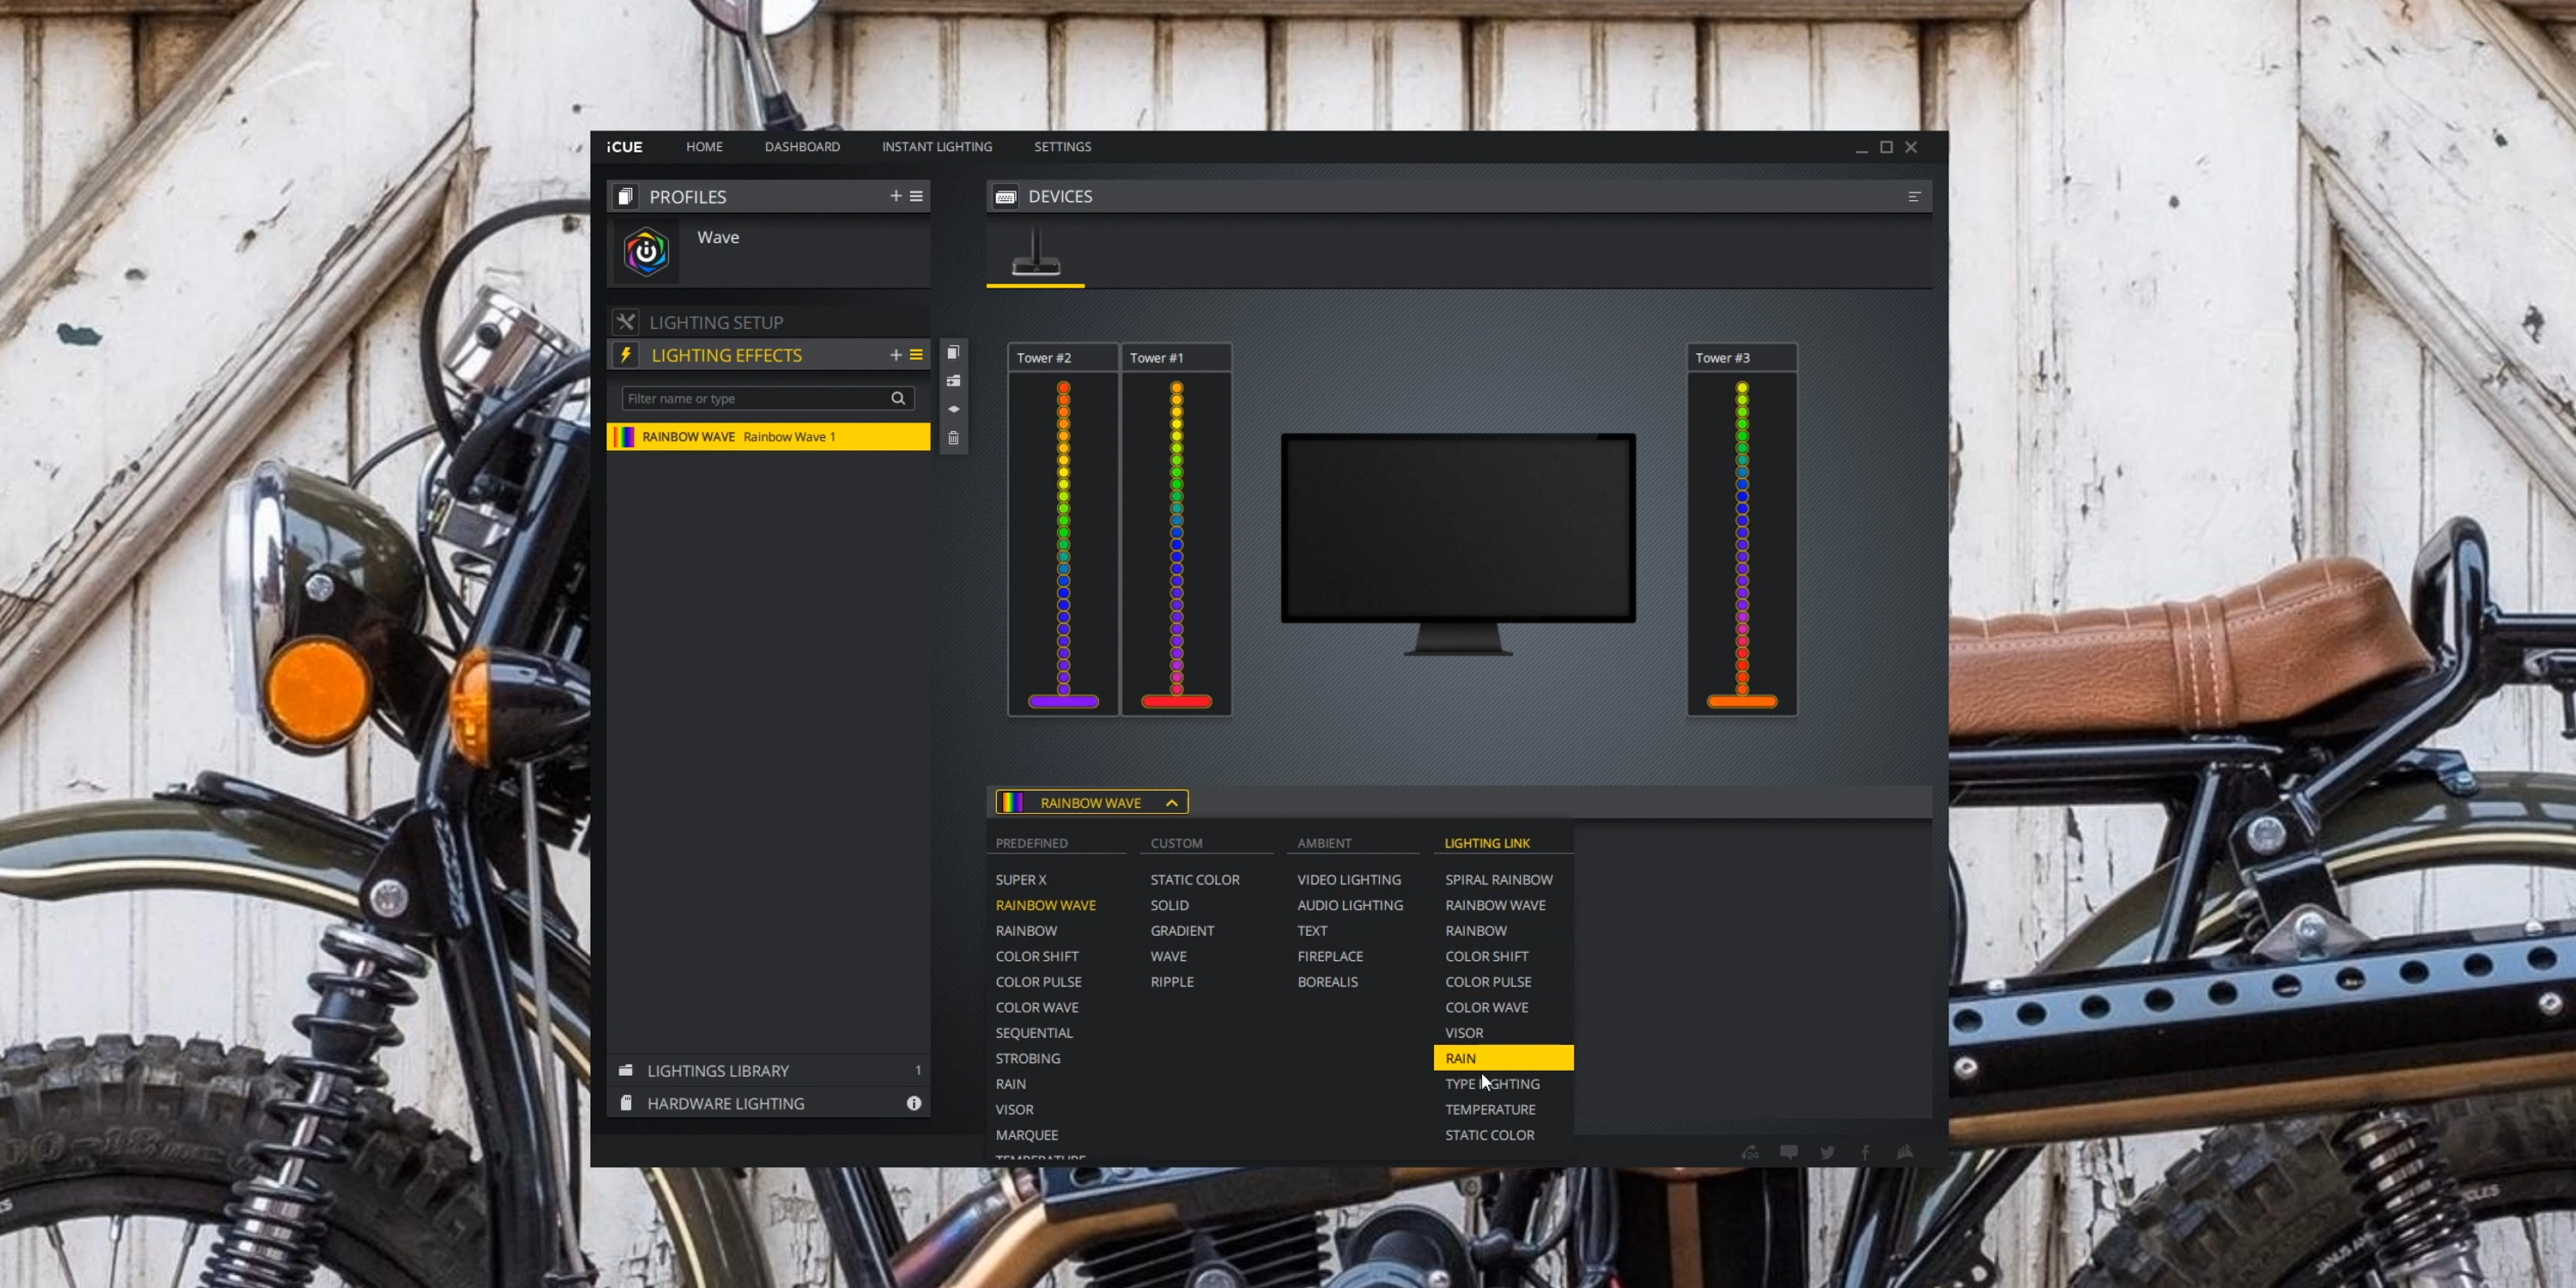 iCUE software to control Corsair LT100 RGB towers